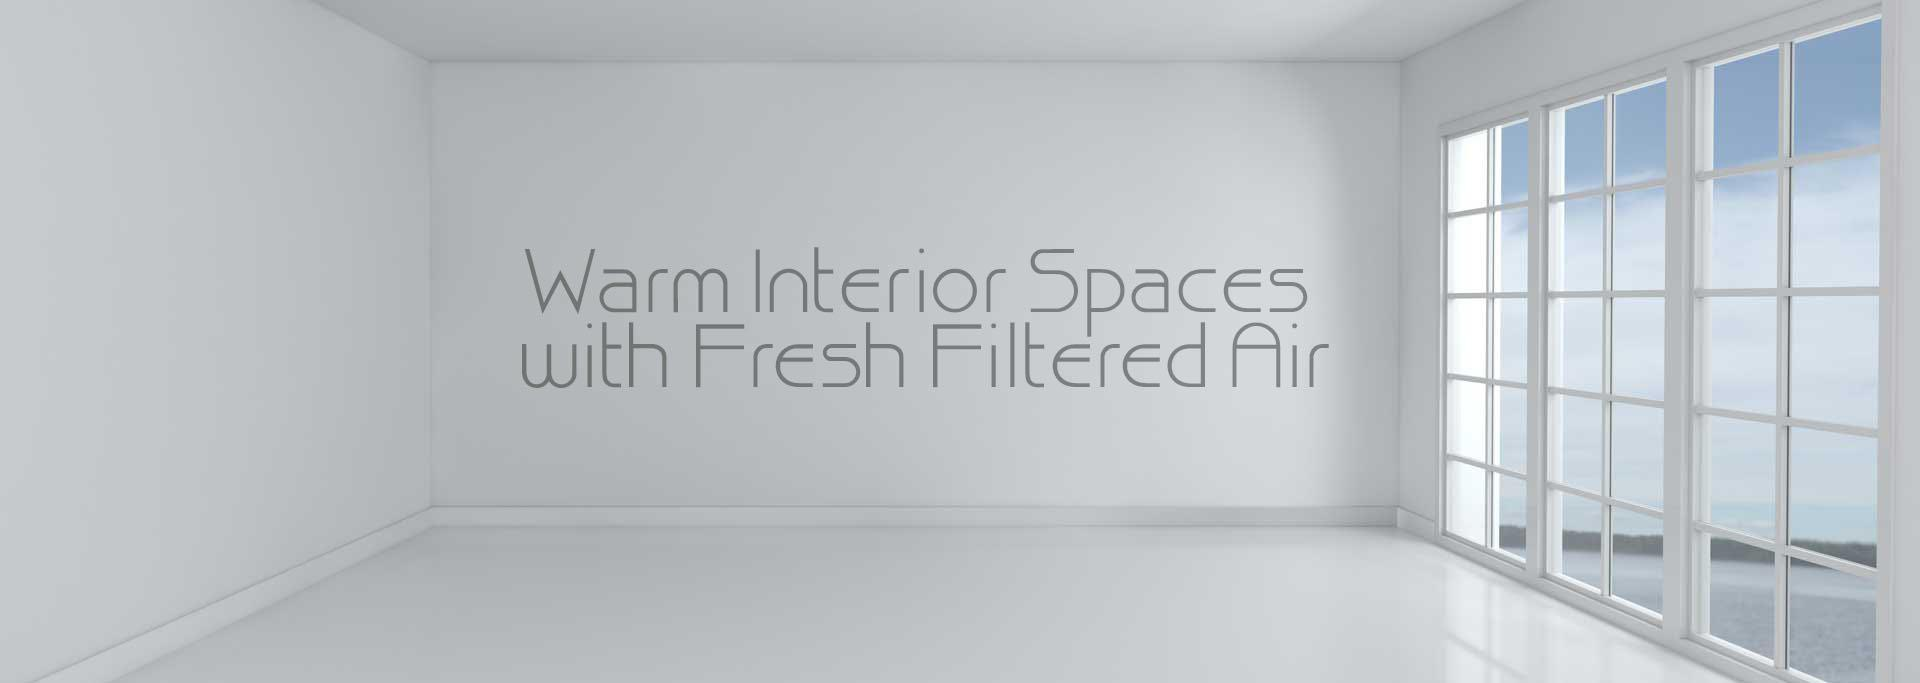 warm interior spaces with fresh filtered air